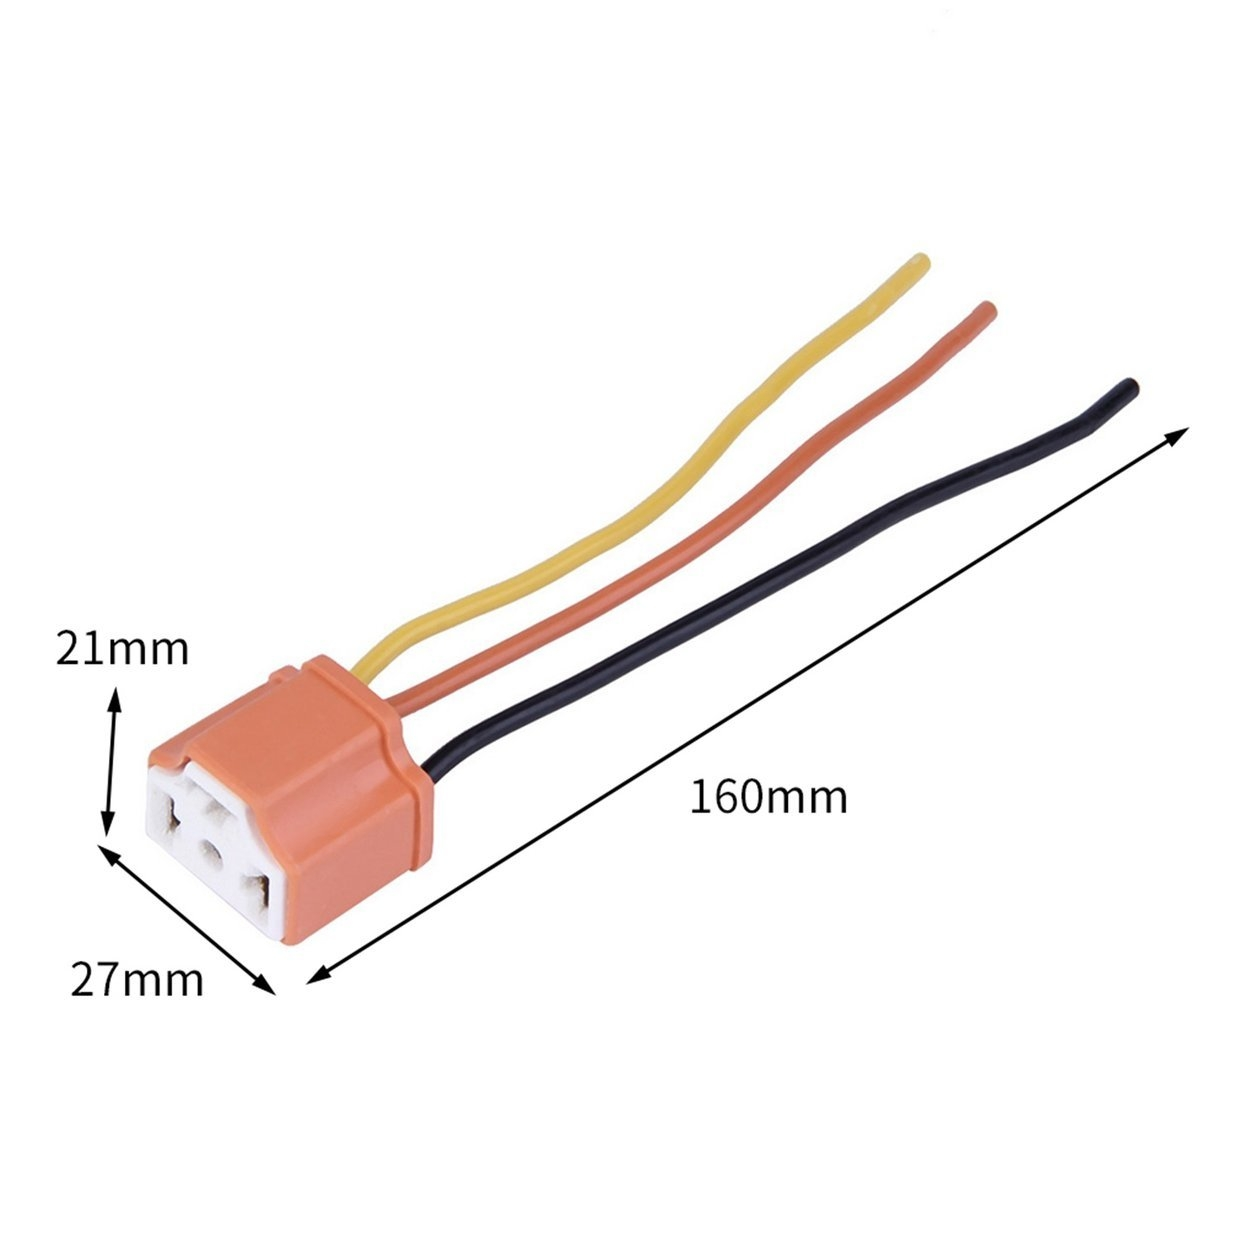 hight resolution of generic or h4 car female ceramic headlight extension connector plug light wire socket orange